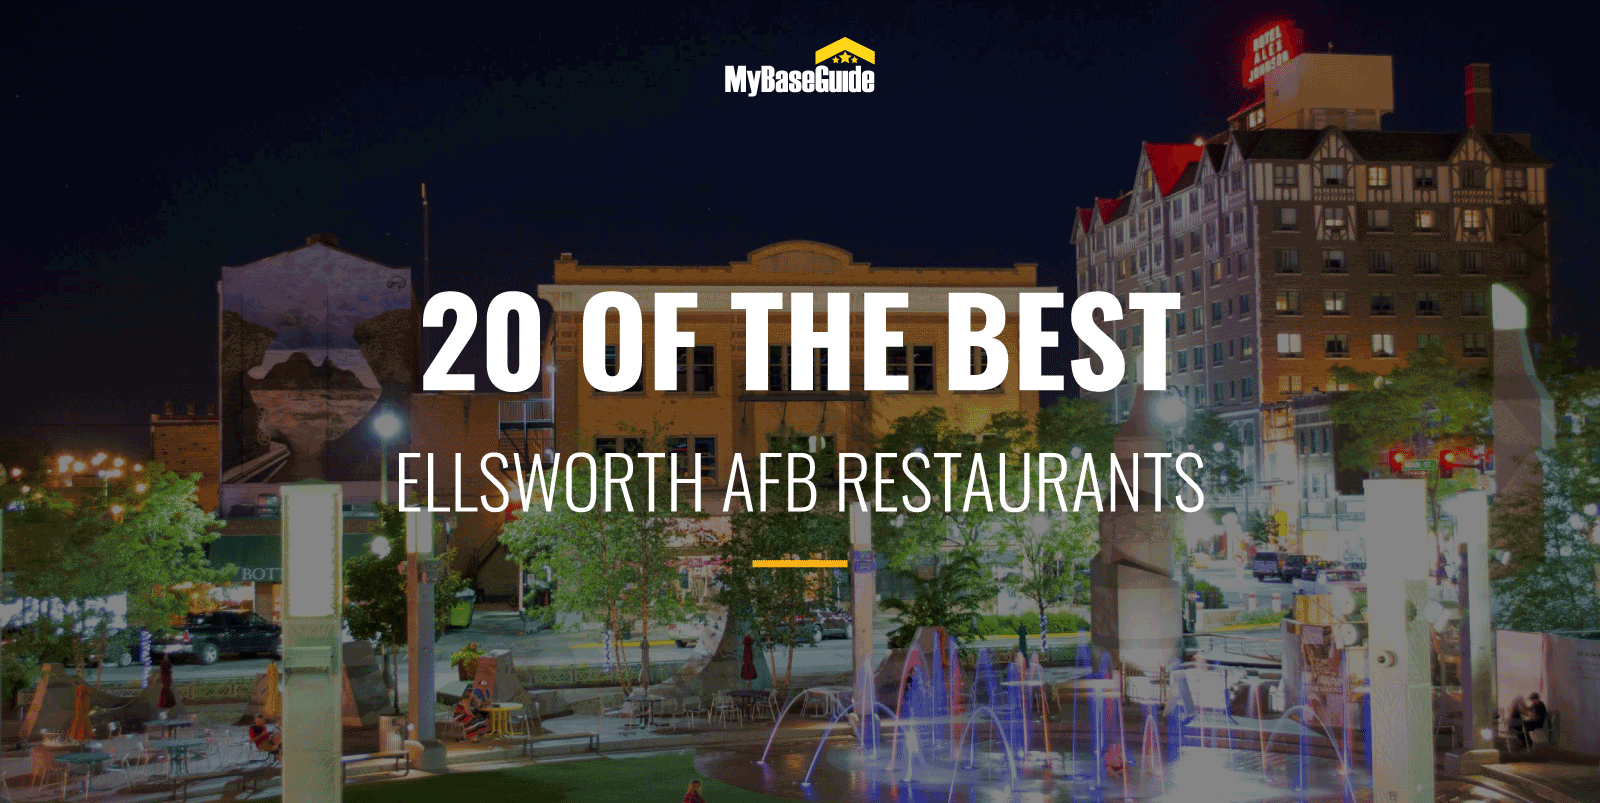 20 of the Best Ellsworth AFB Restaurants